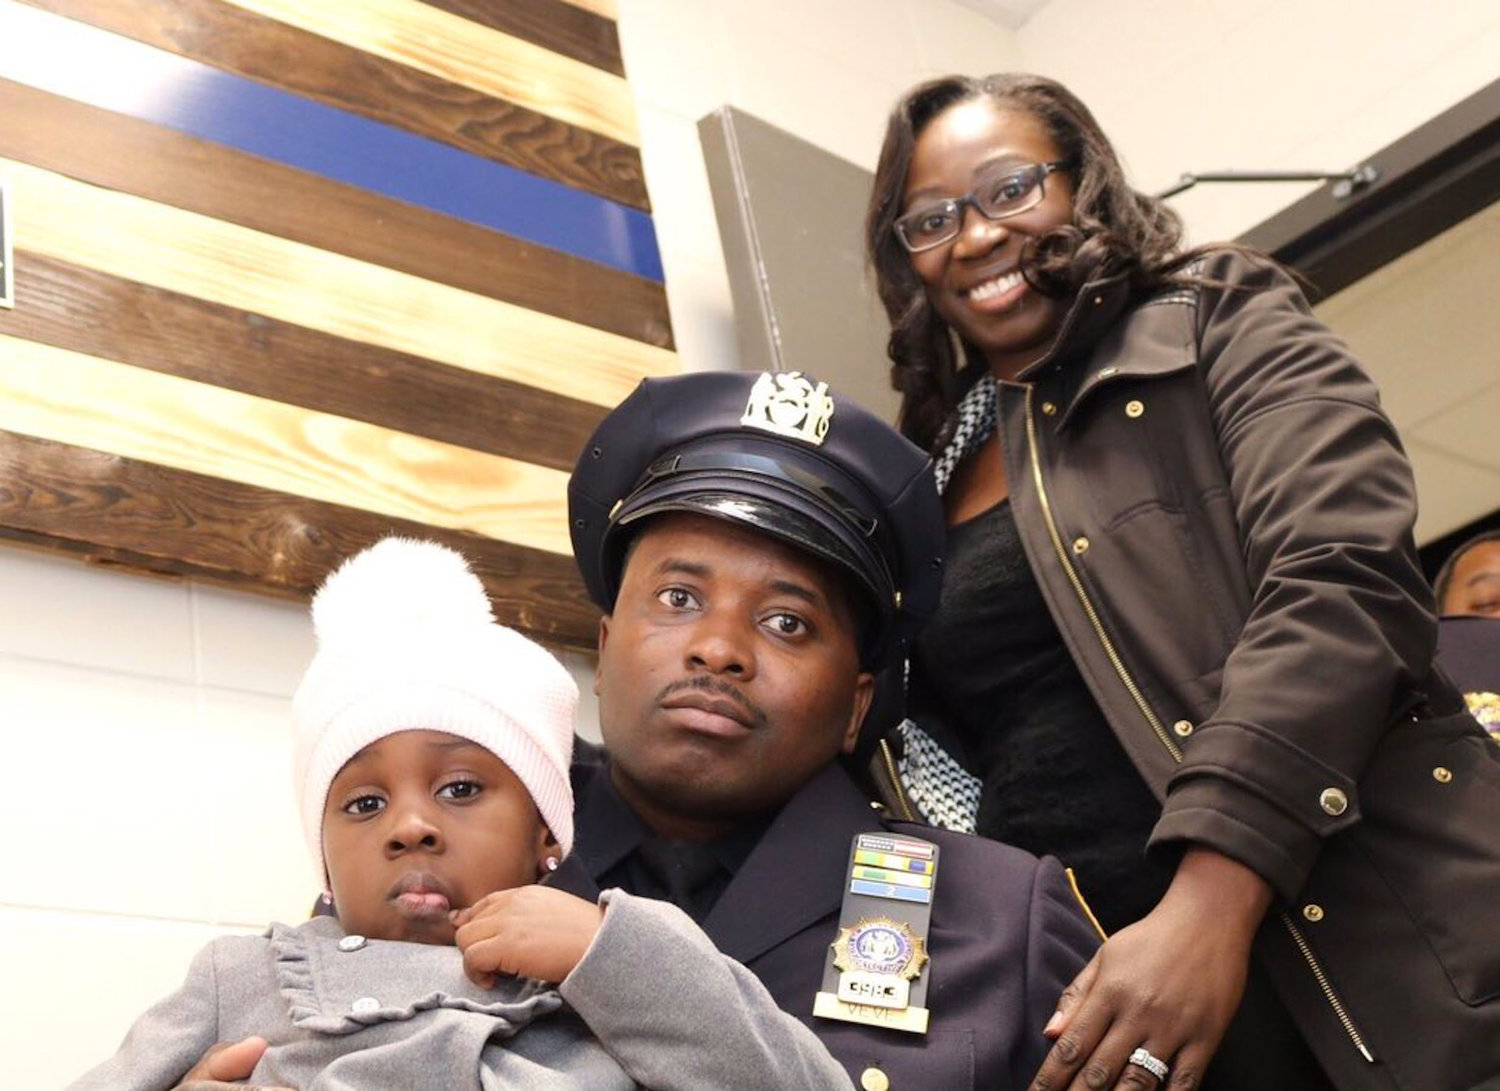 NYPD Detective Dalsh Veve with his wife, Esther, and their daughter.